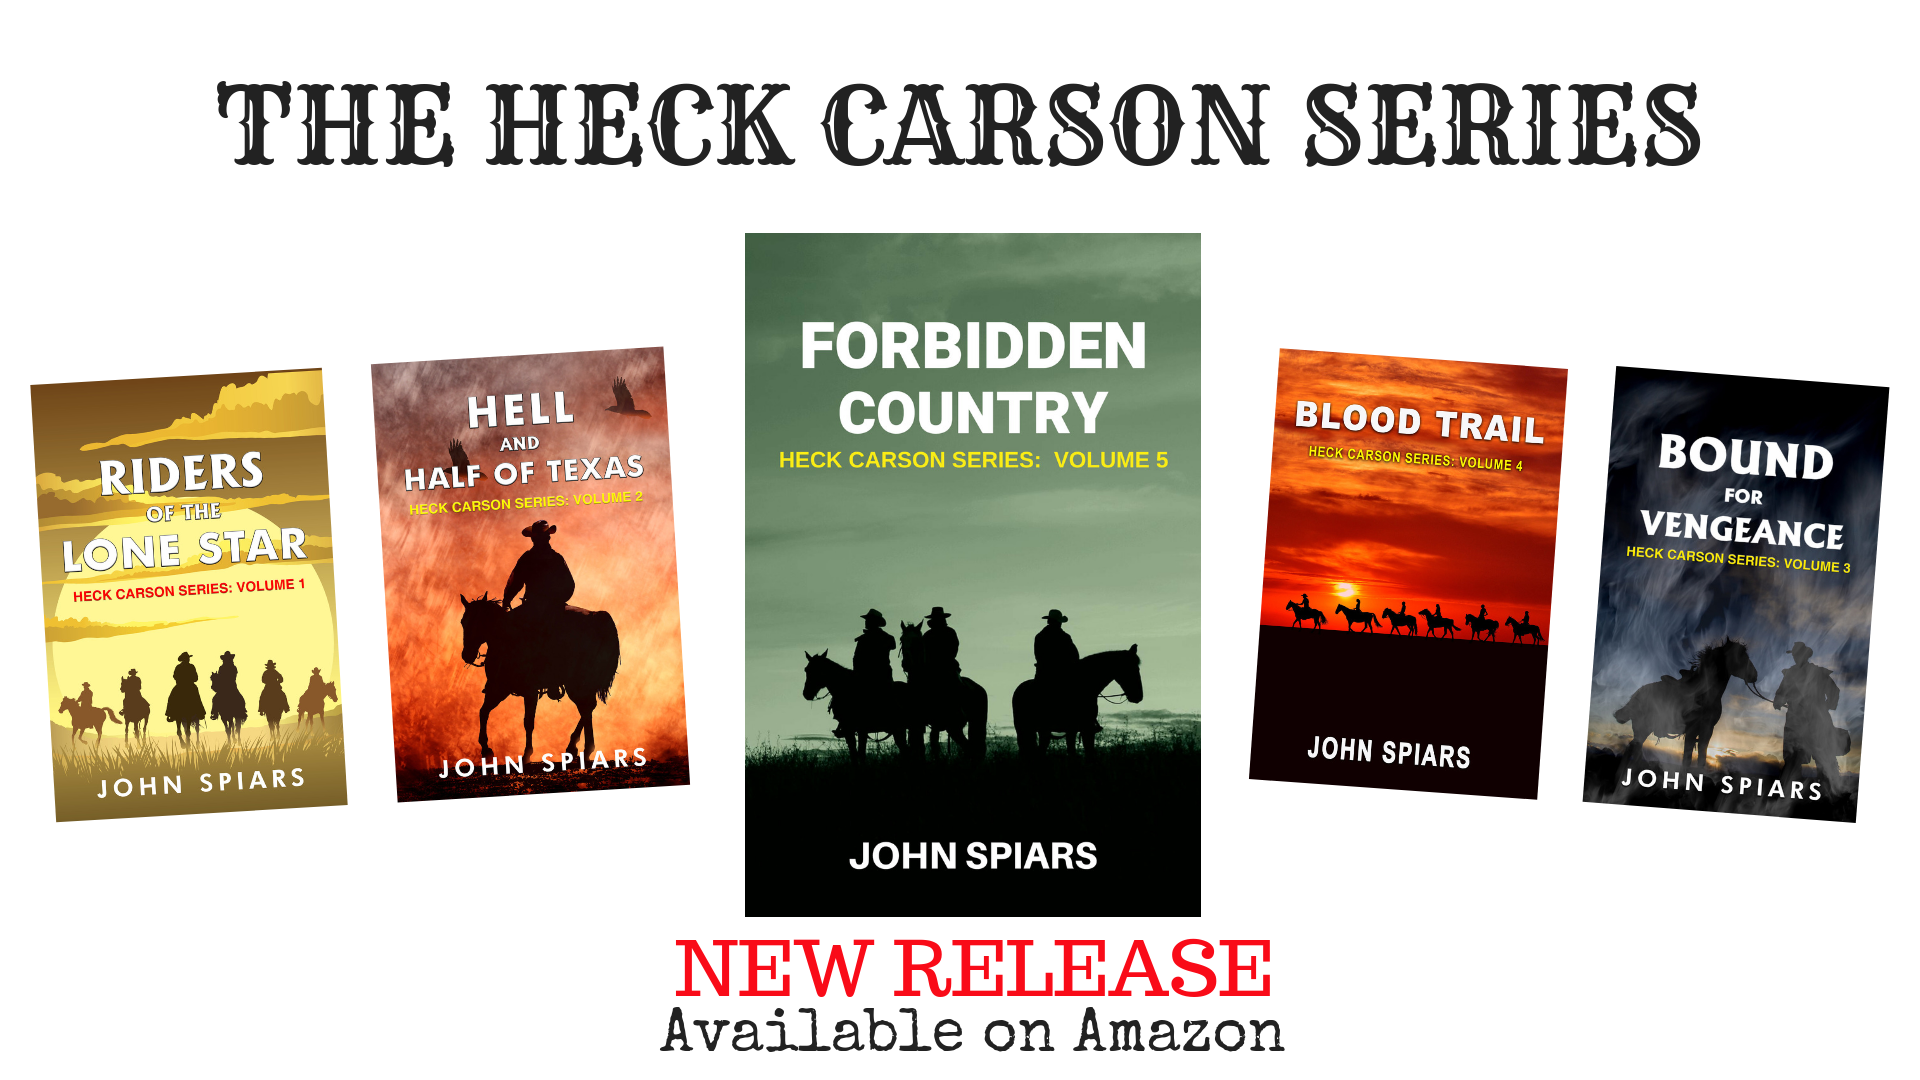 John Spiars; Heck Carson; ebook; western; texas; under the lone star; amazon